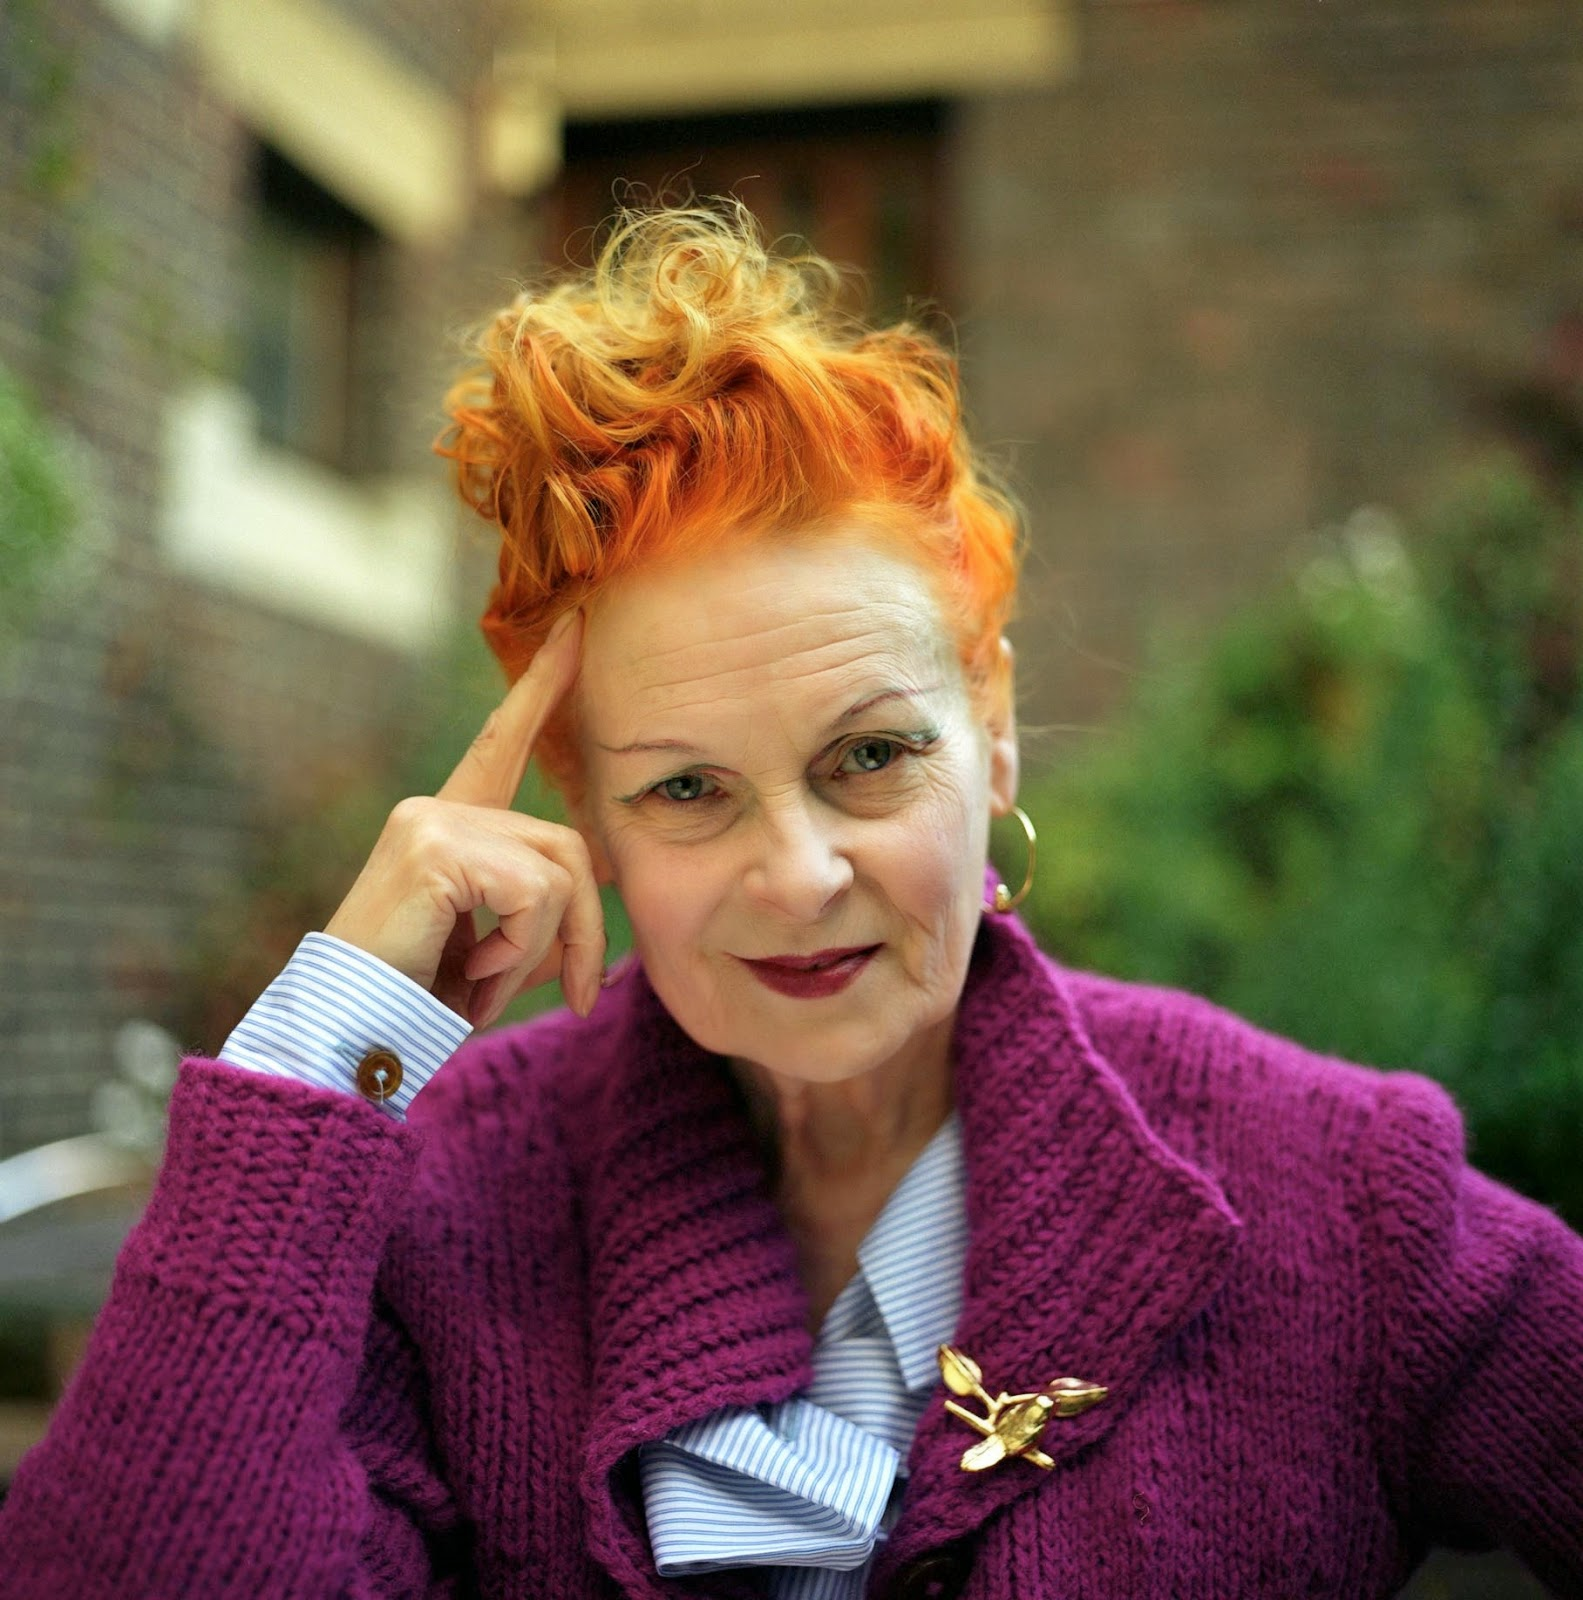 Eniwhere Fashion - News on Fashion - Vivienne Westwood